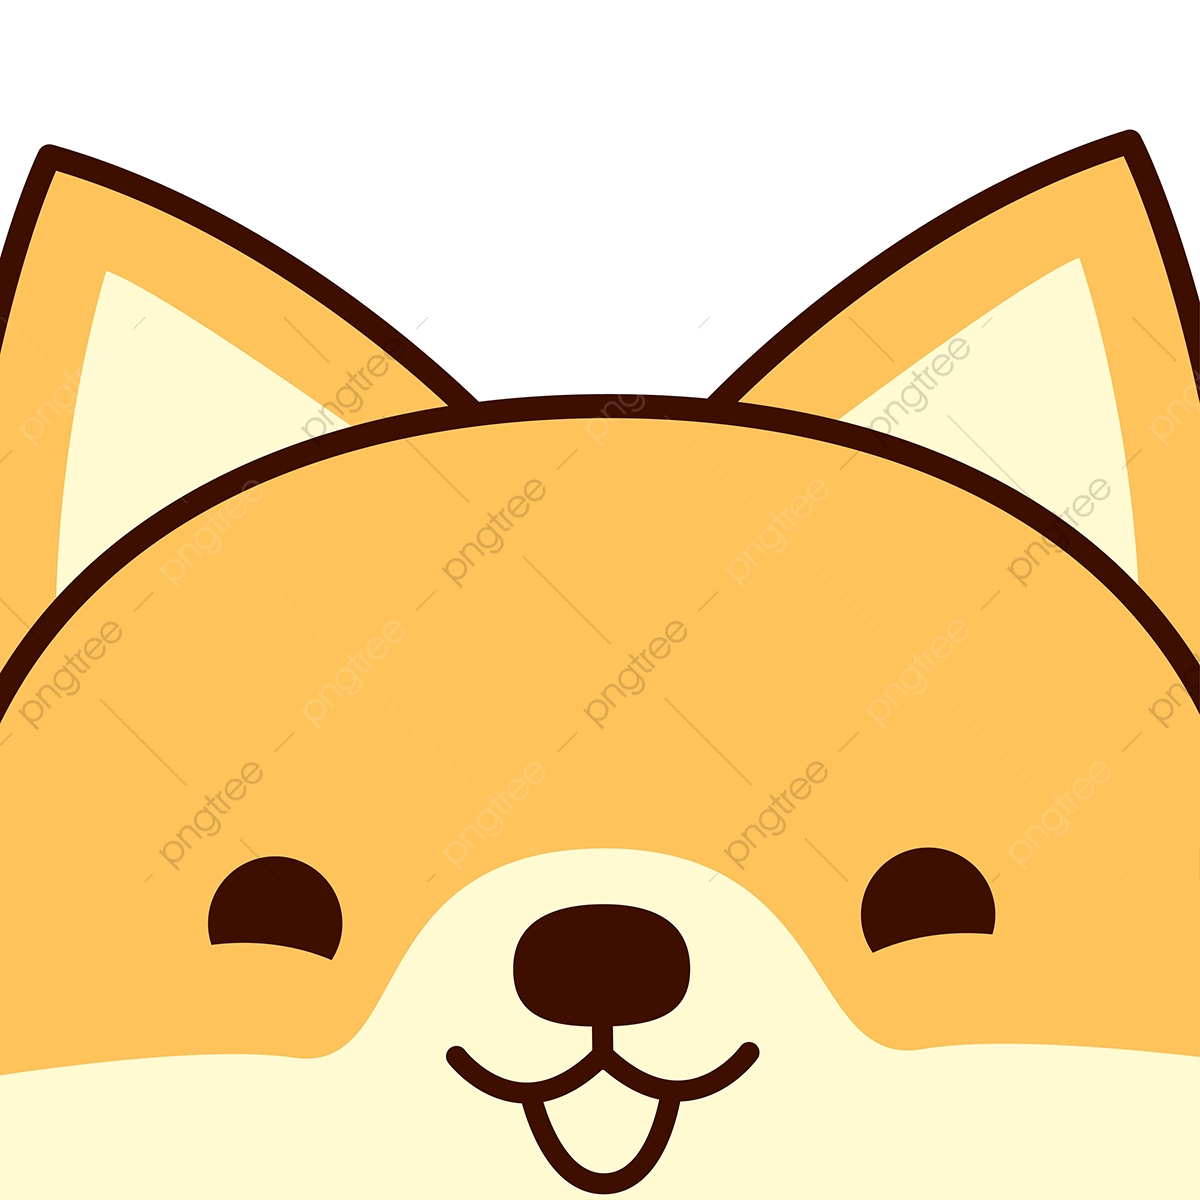 Cute Baby Dog Face Vector, Cute, Cat, Illustration PNG and Vector ... banner free library